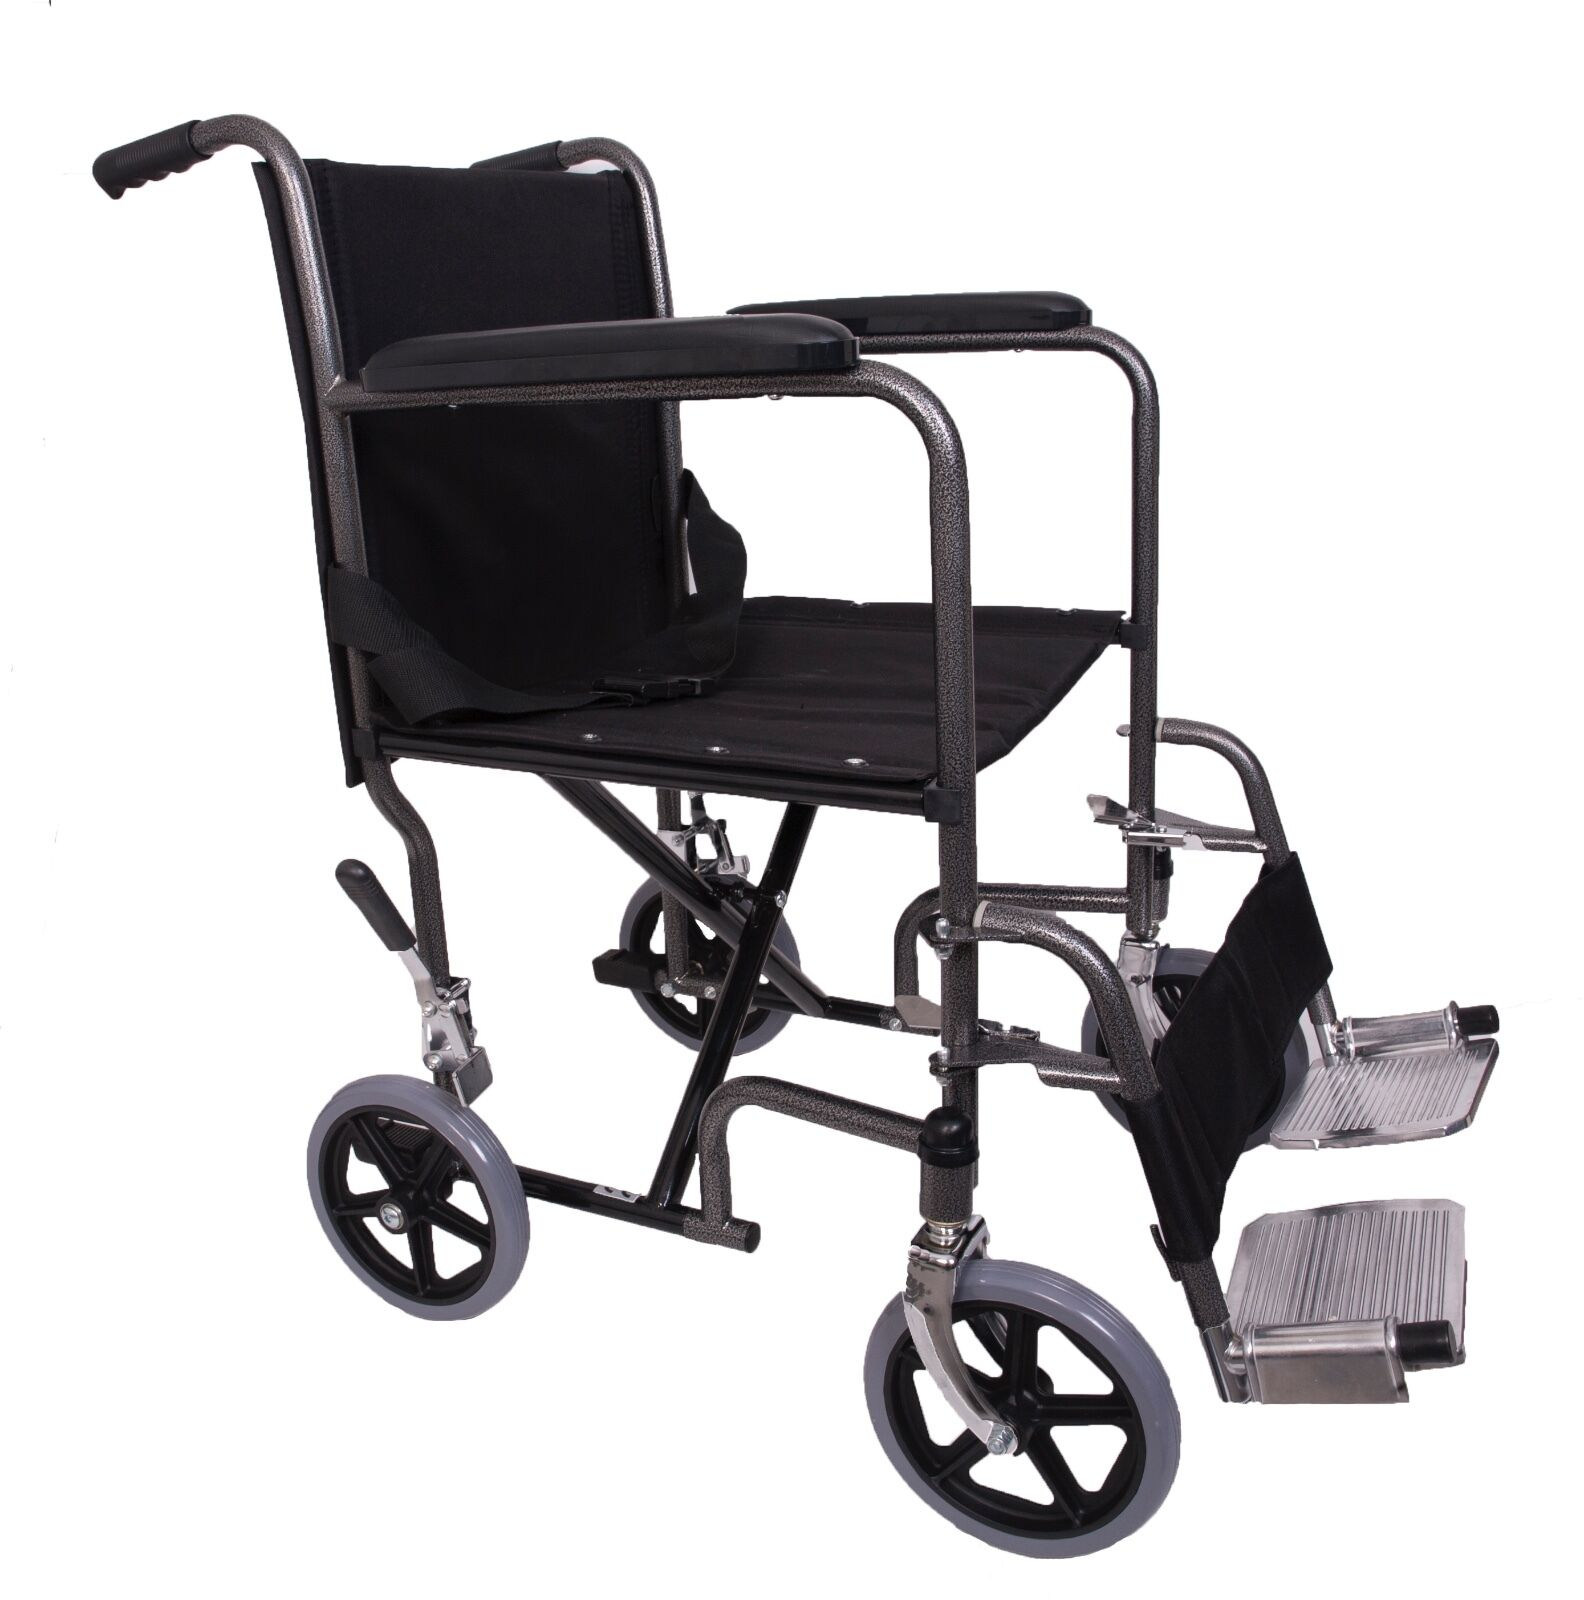 Angel mobility lightweight folding transit travel for Lightweight motorized folding wheelchair